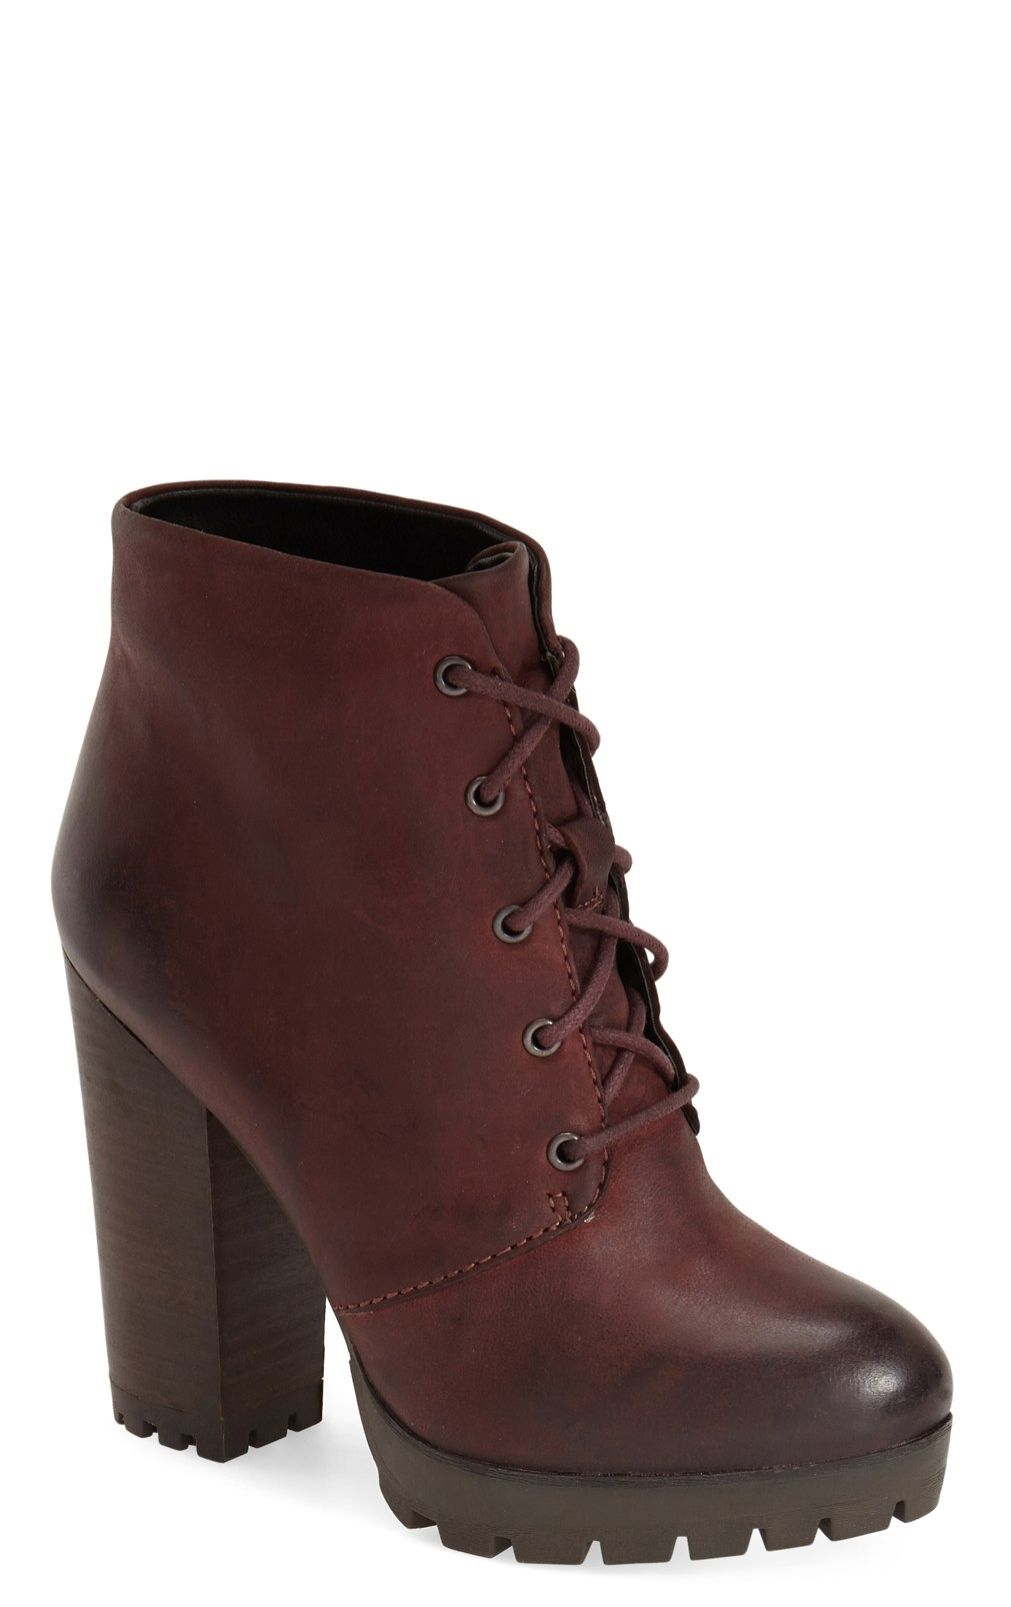 92440b35174 These lace-up burgundy platform booties would look fall-fabulous with  skinny jeans